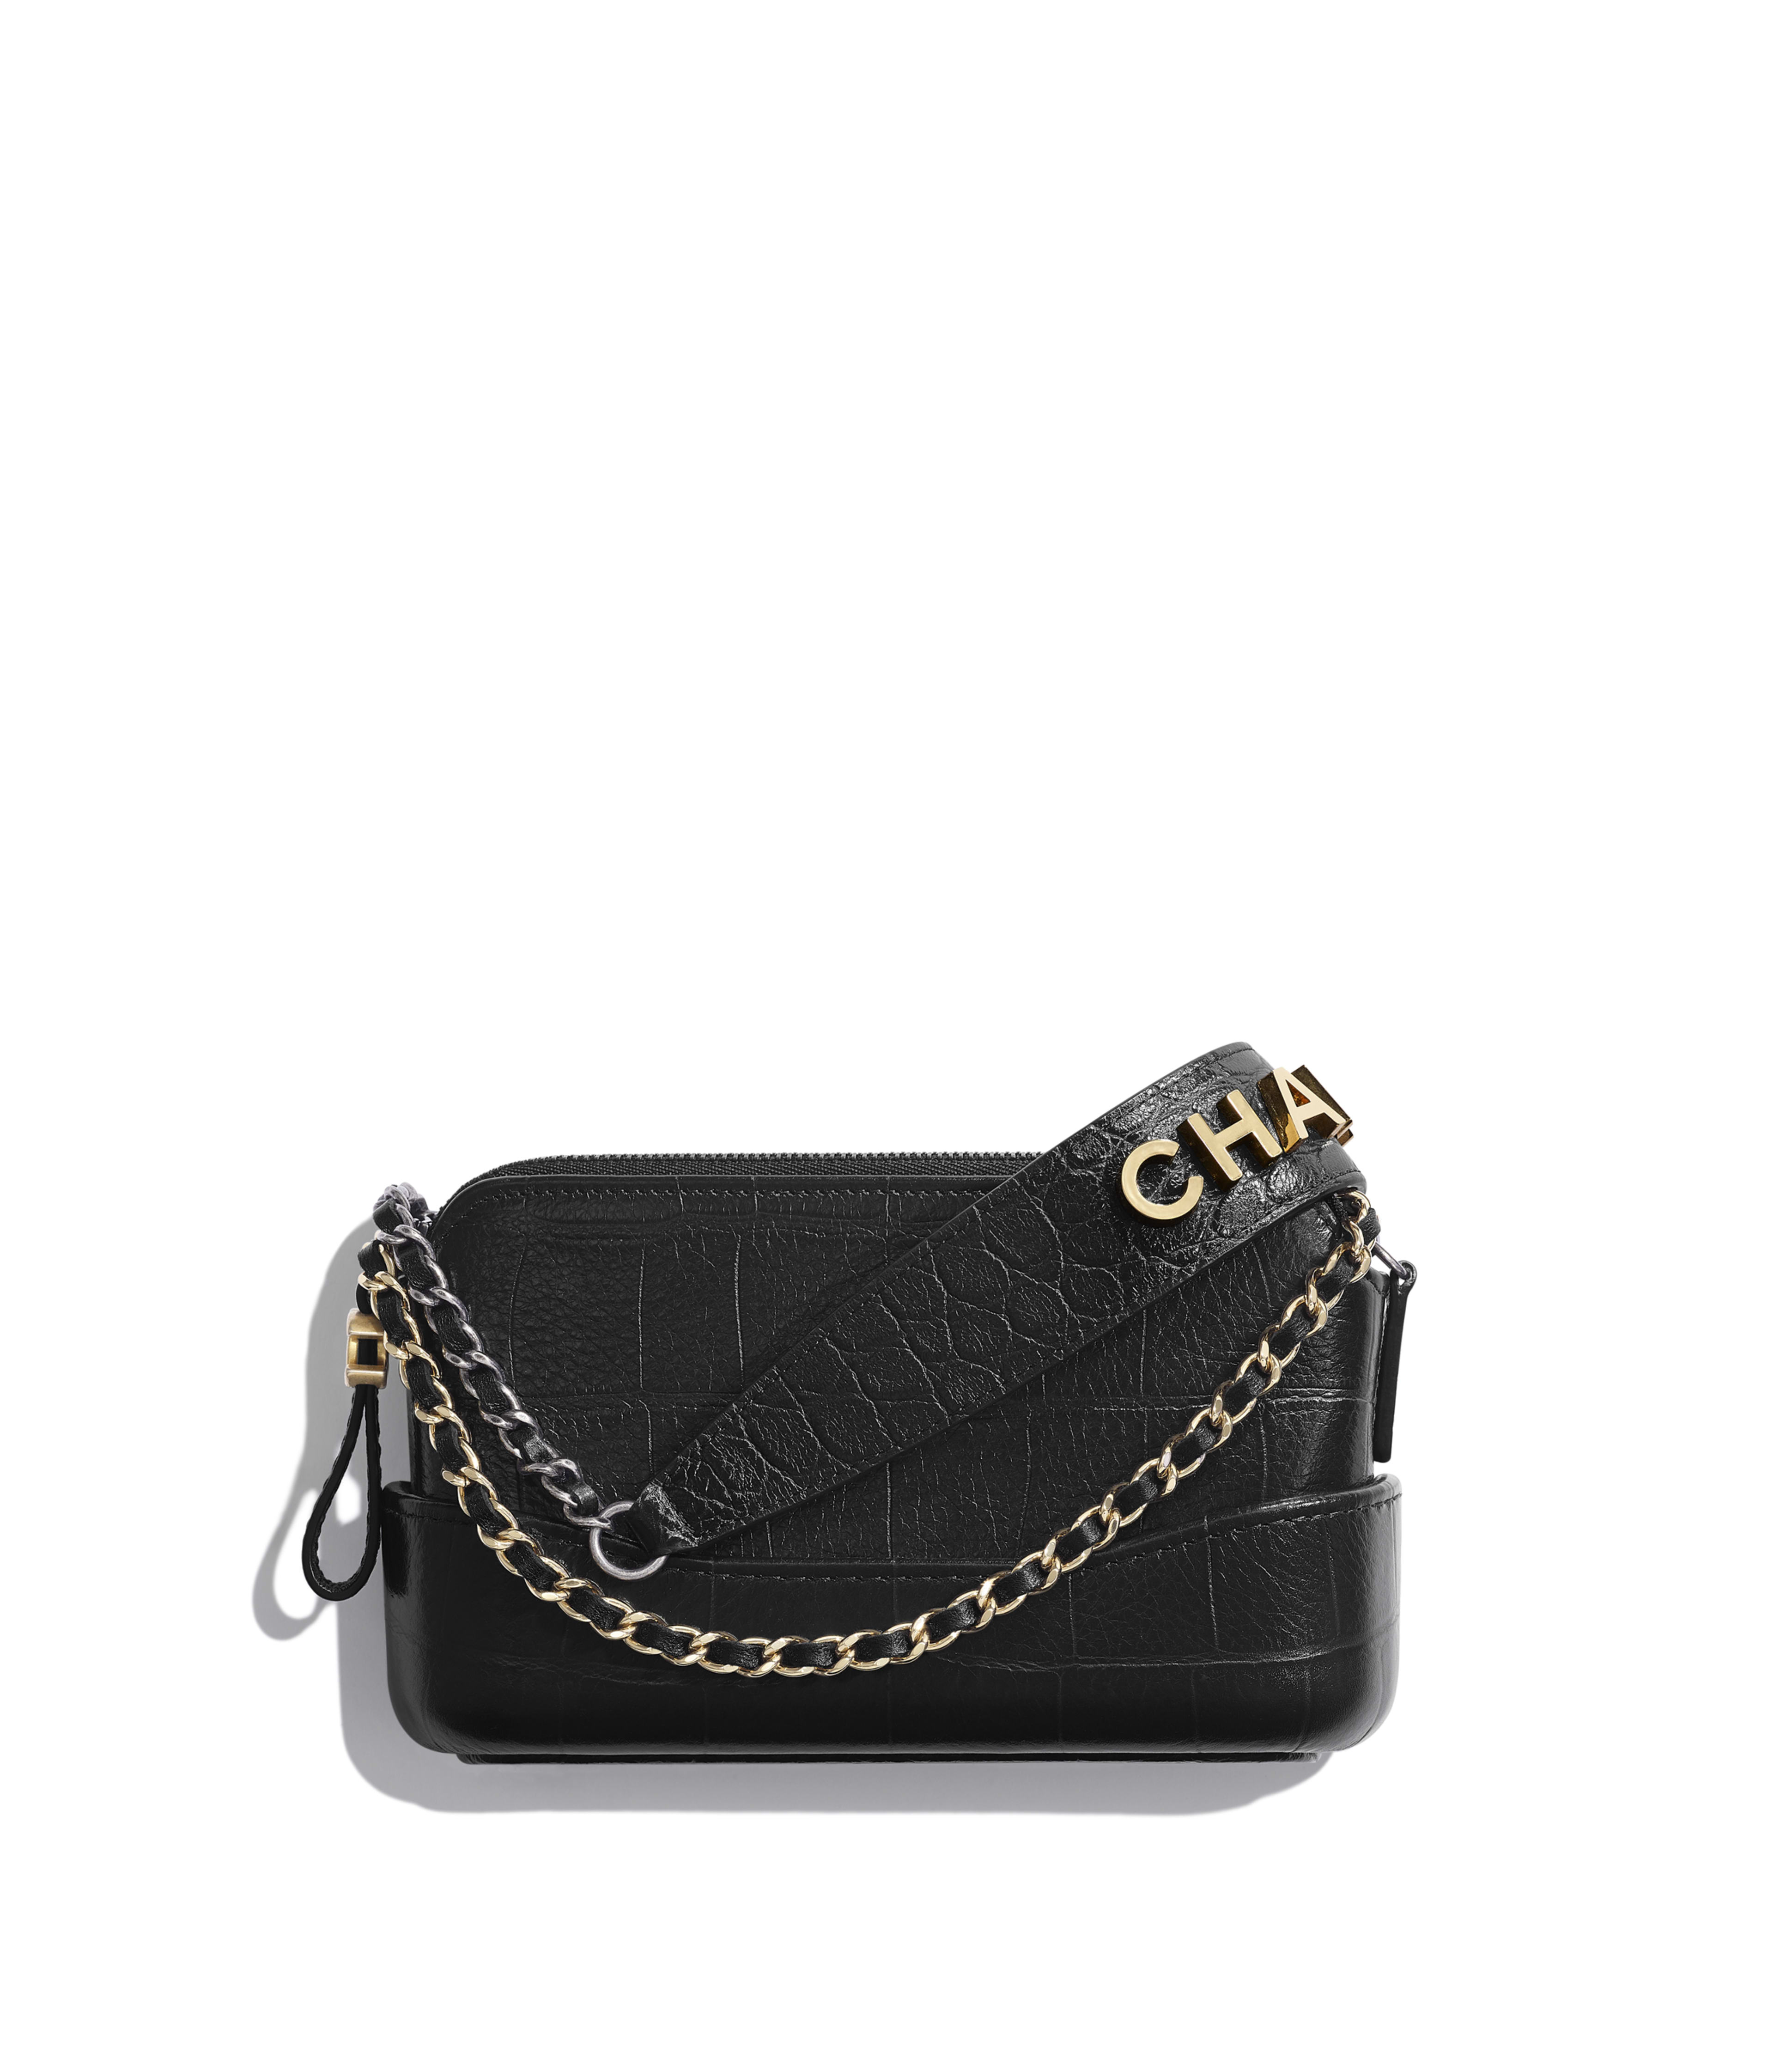 9c1ef71c9 Clutch with Chain Crocodile Embossed Calfskin, Gold-Tone & Silver-Tone  Metal, Black Ref. A94505B0081594305